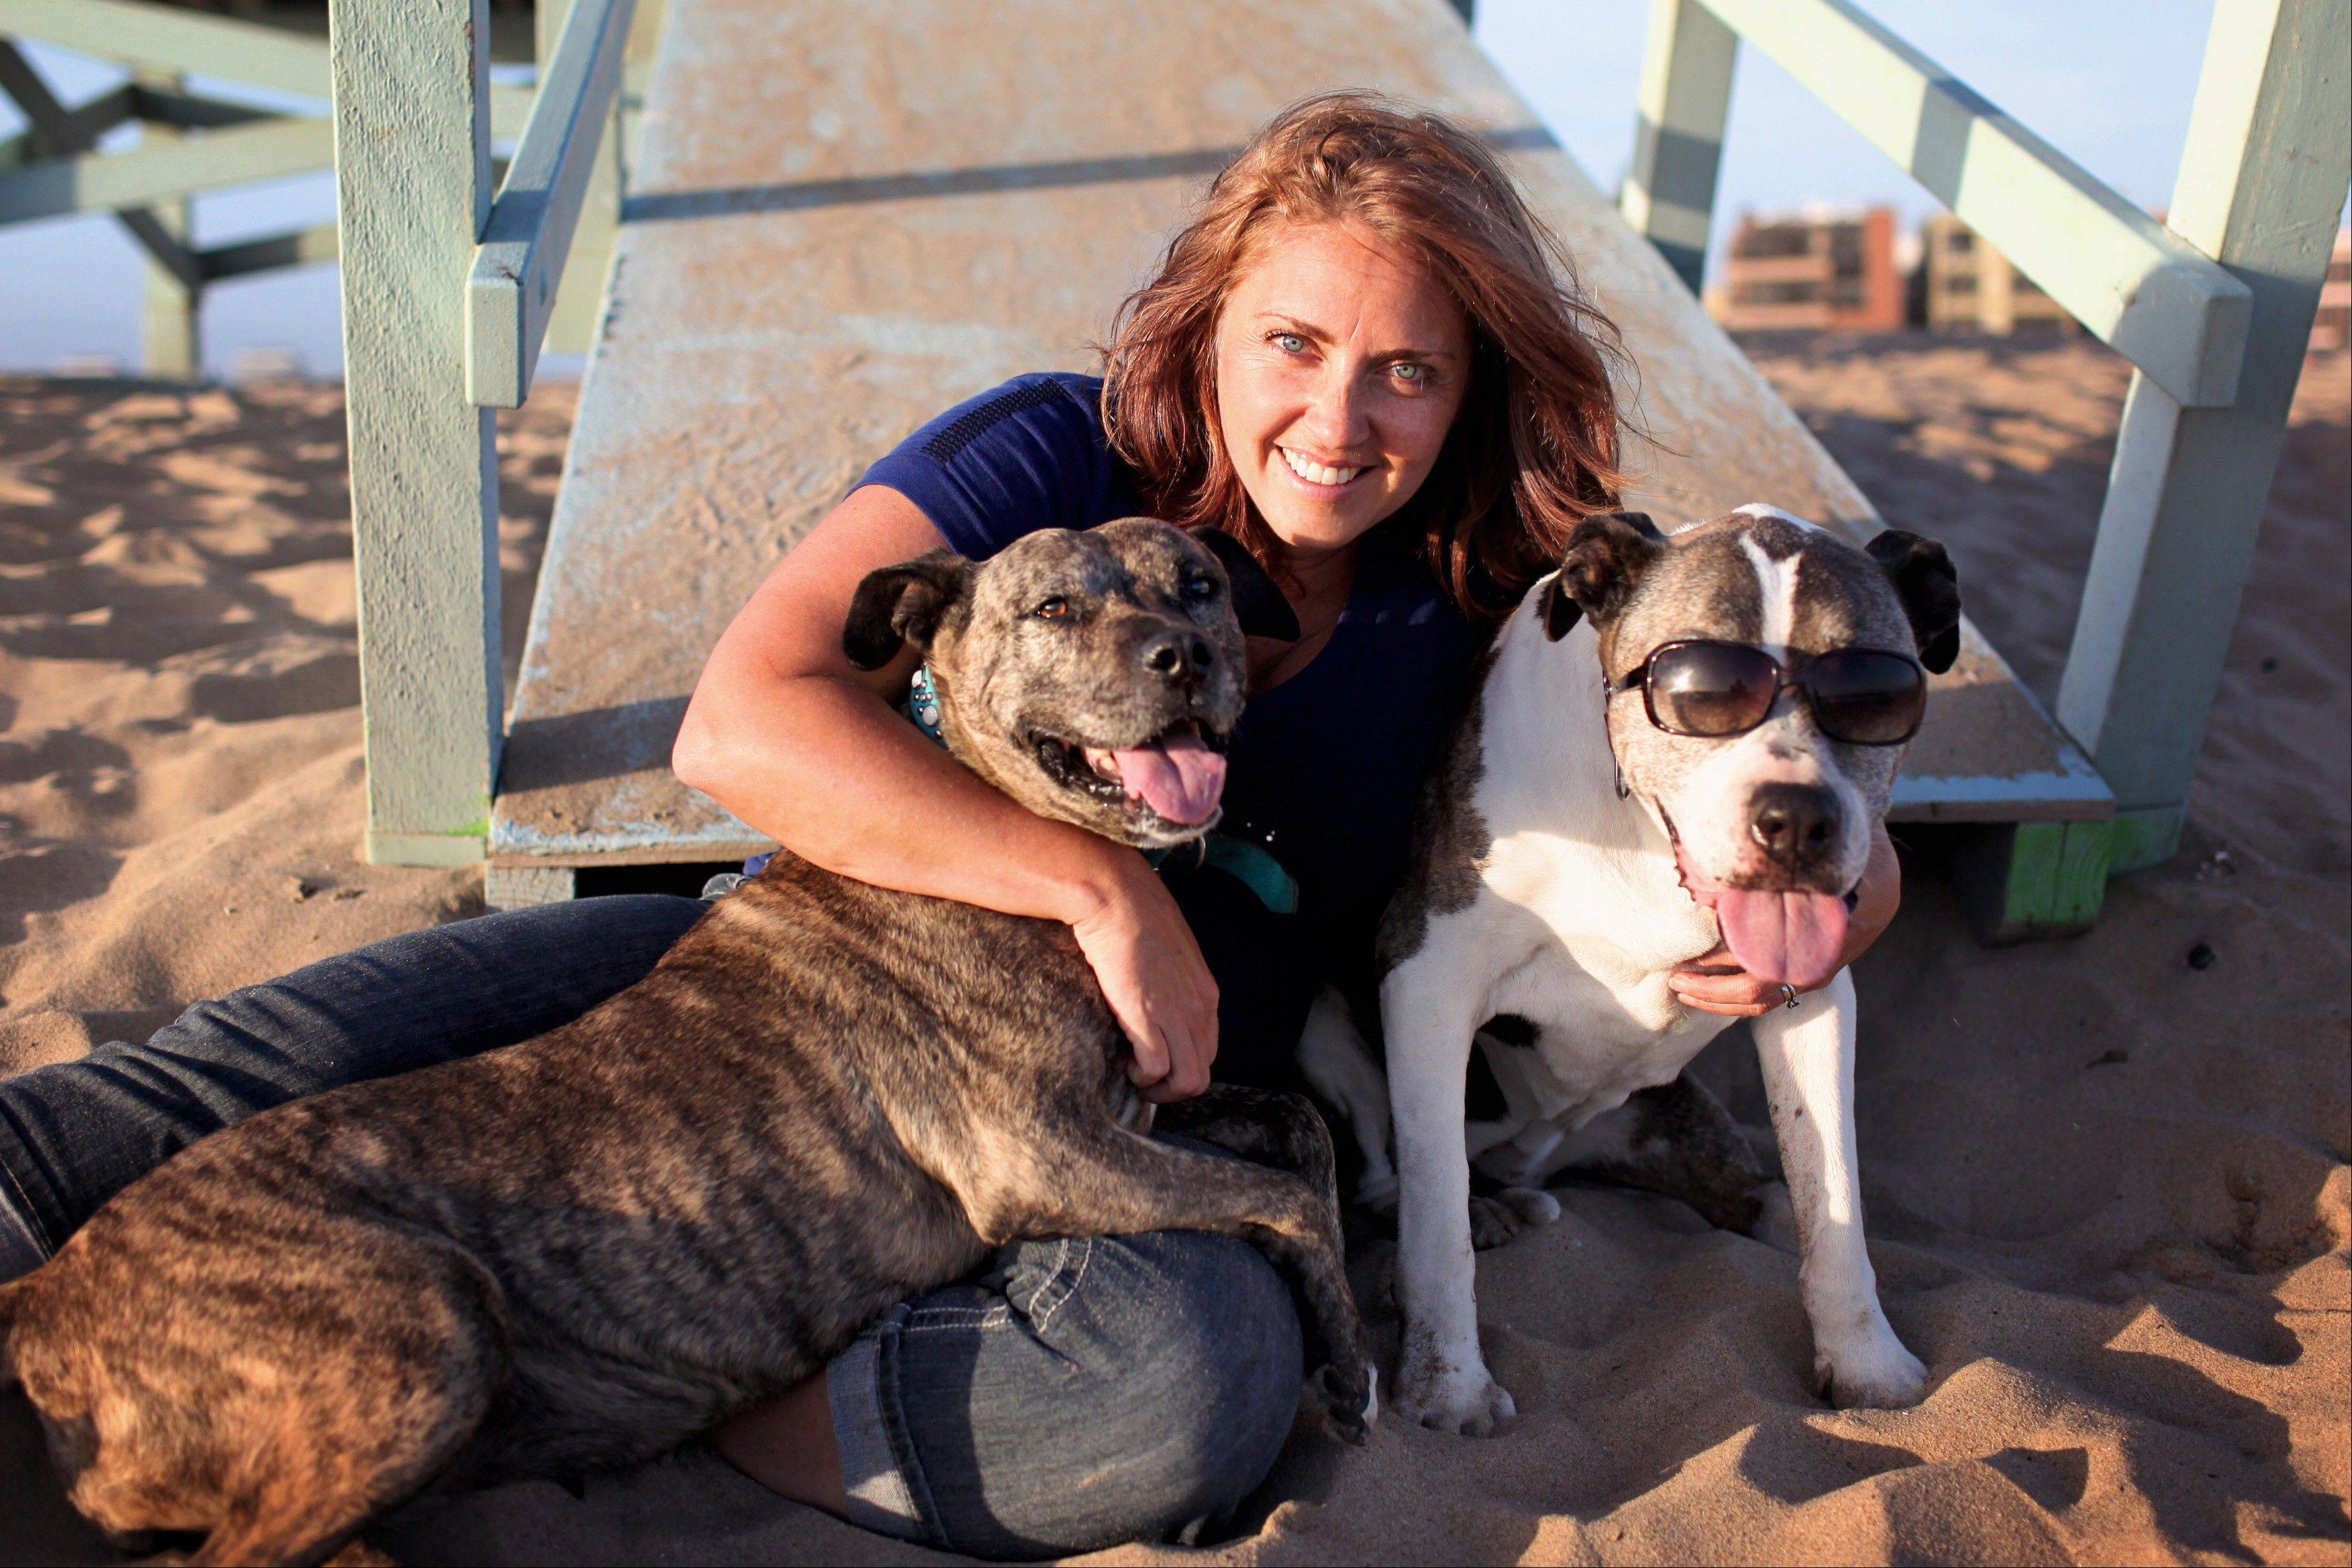 Photographer Lori Fusaro hugging her two dogs: Gabby, 10, left, and Sunny, 17, at Playa del Rey in Los Angeles. Fusaro is working on �Silver Hearts,� a photo book of old dogs.